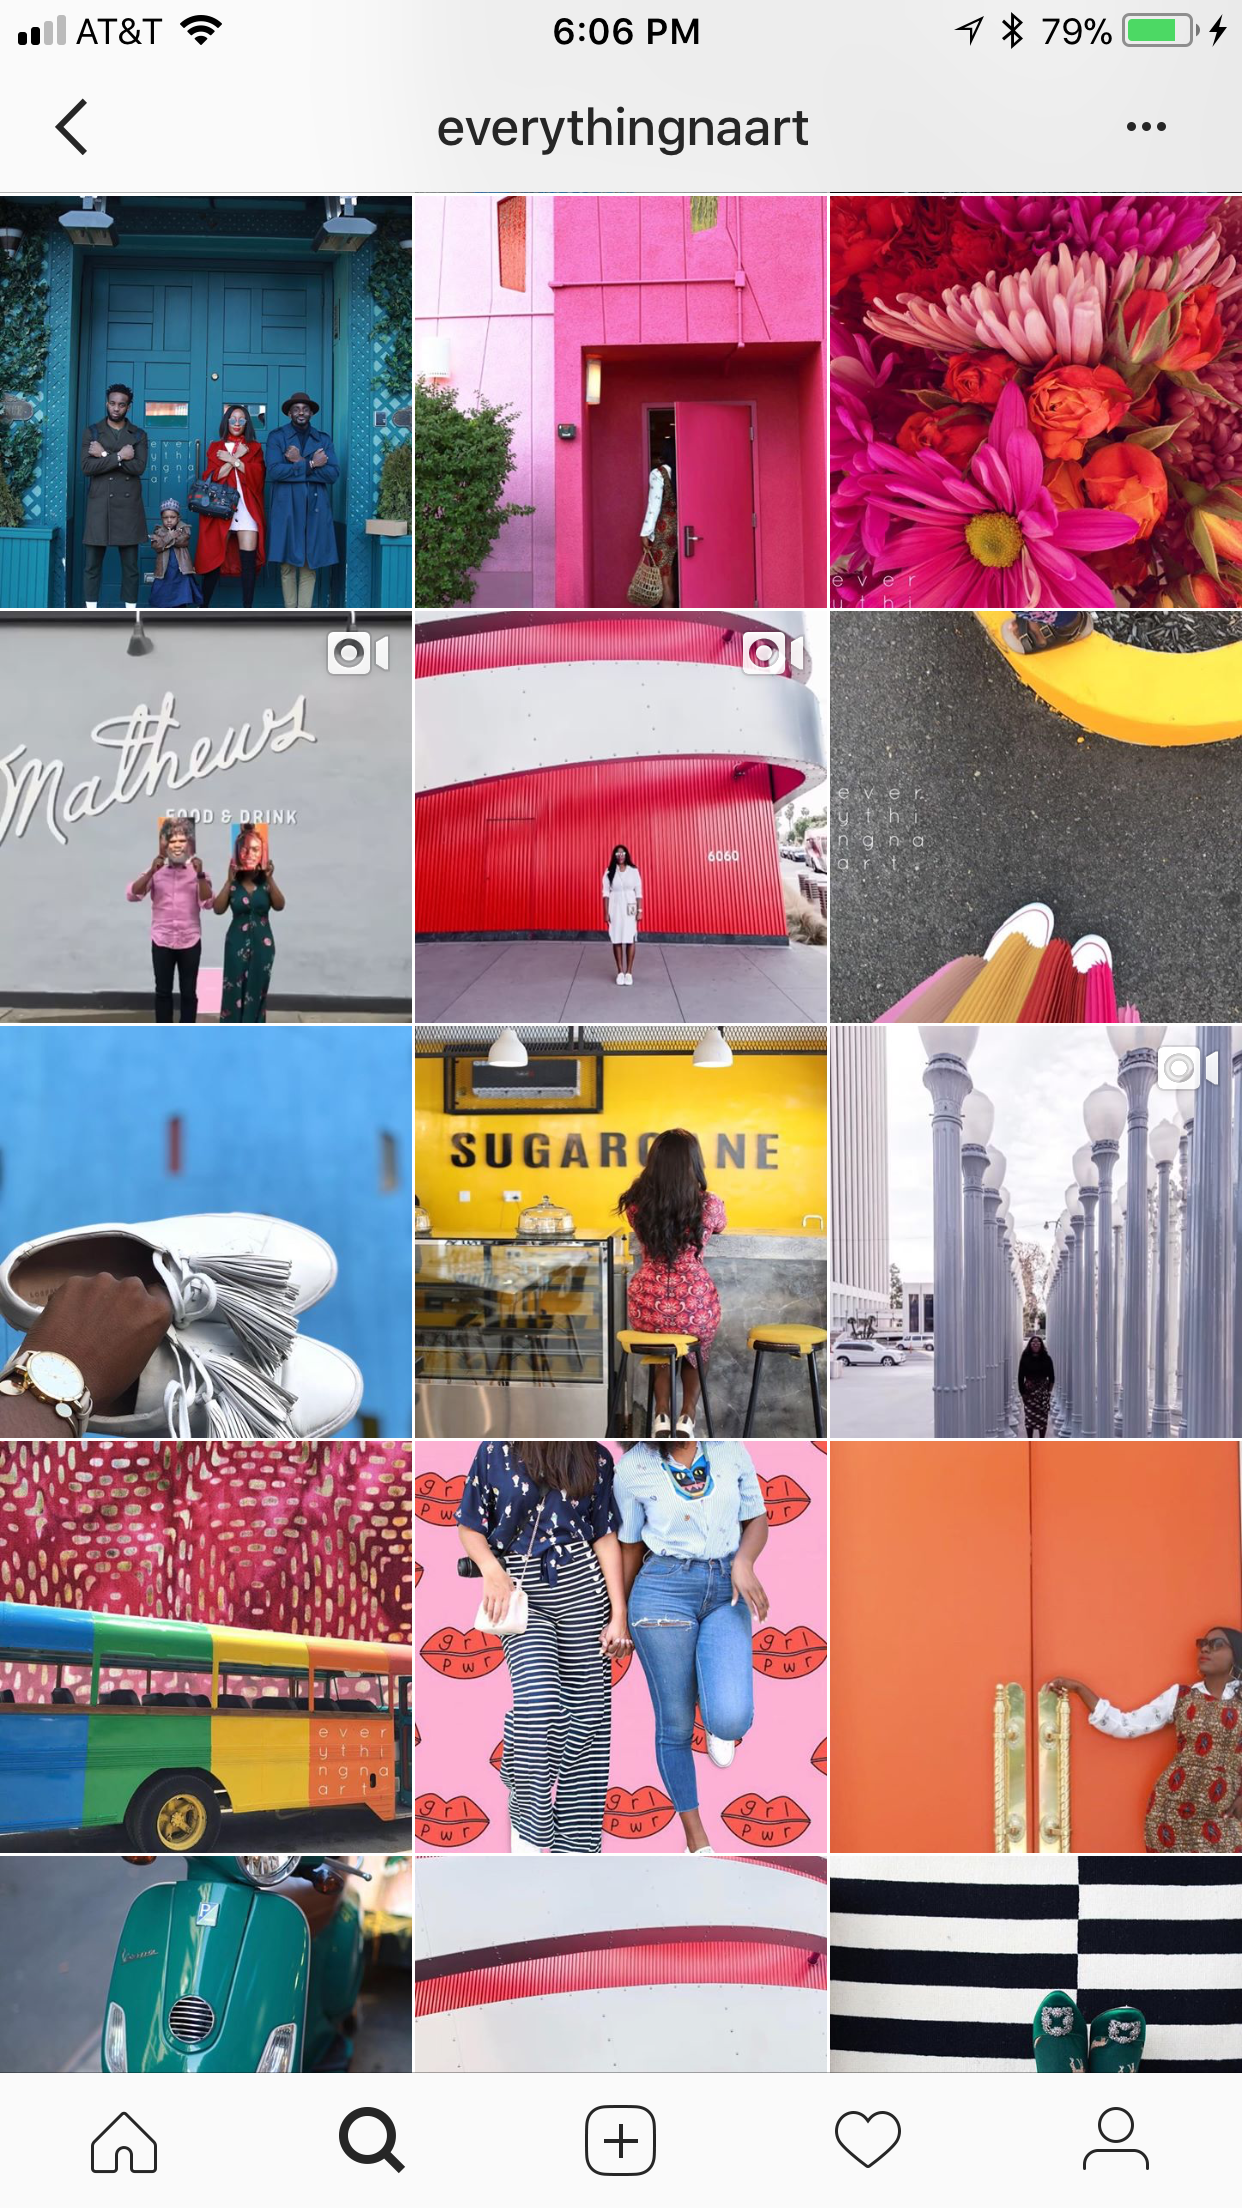 Everything.Na.Art - As you can probably tell from that instagram feed,